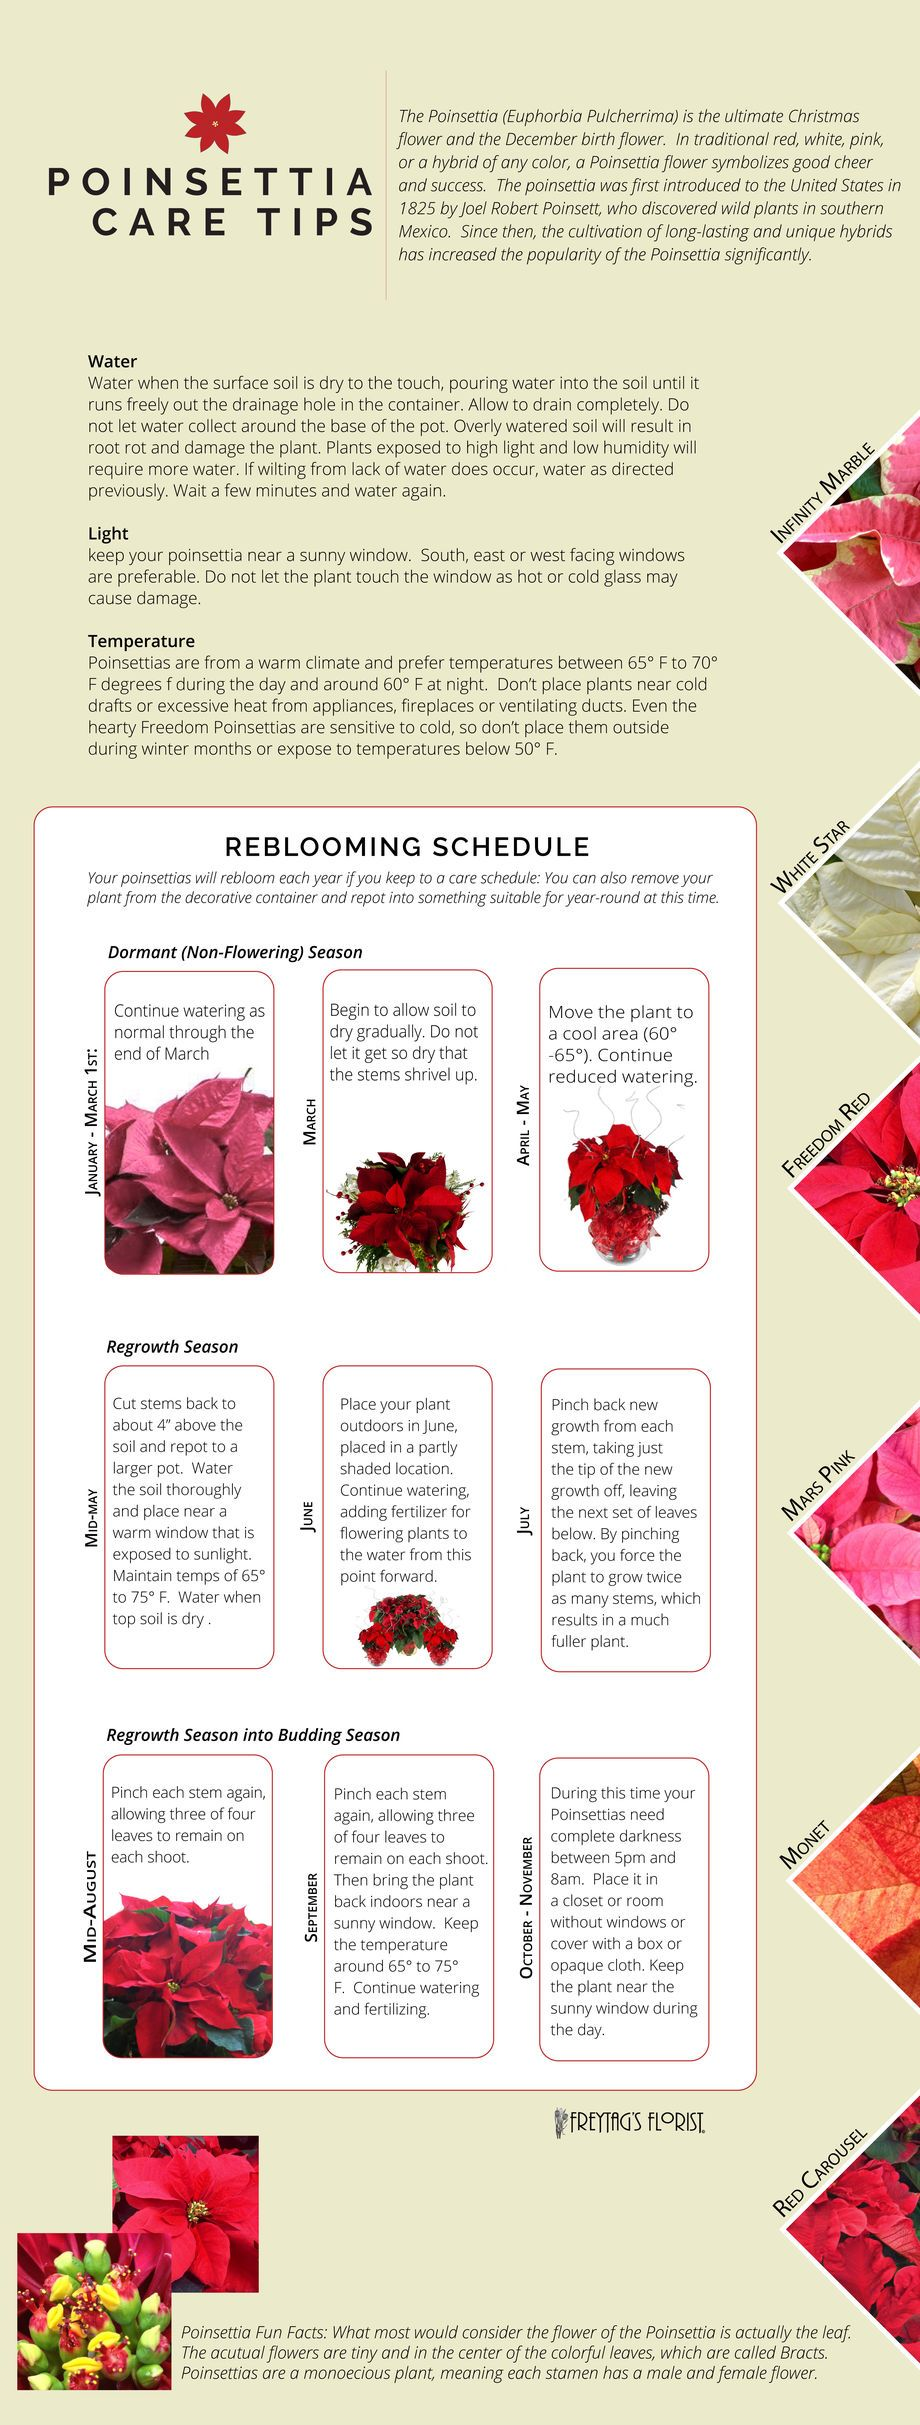 Poinsettia care & reblooming tips | Pro Tips from a Florist ...